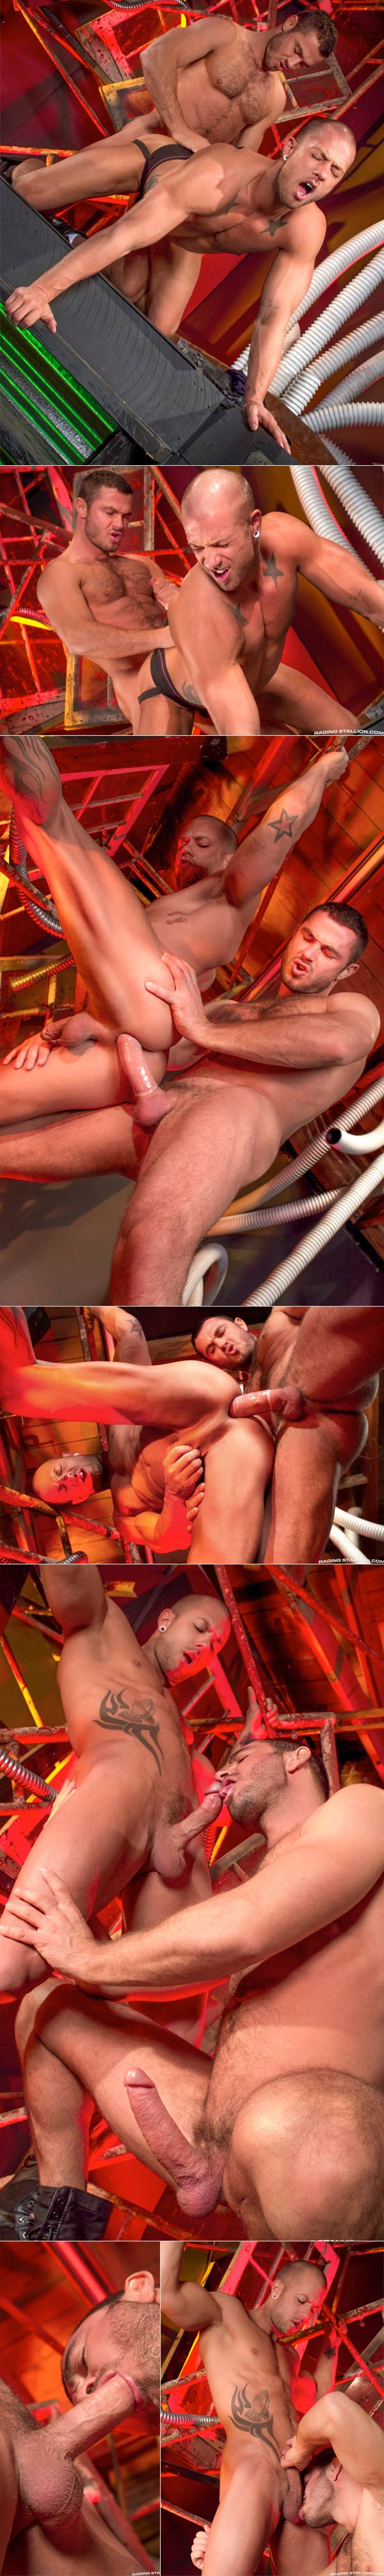 Cock Shot (Jessy Ares & Rod Daily) at Raging Stallion